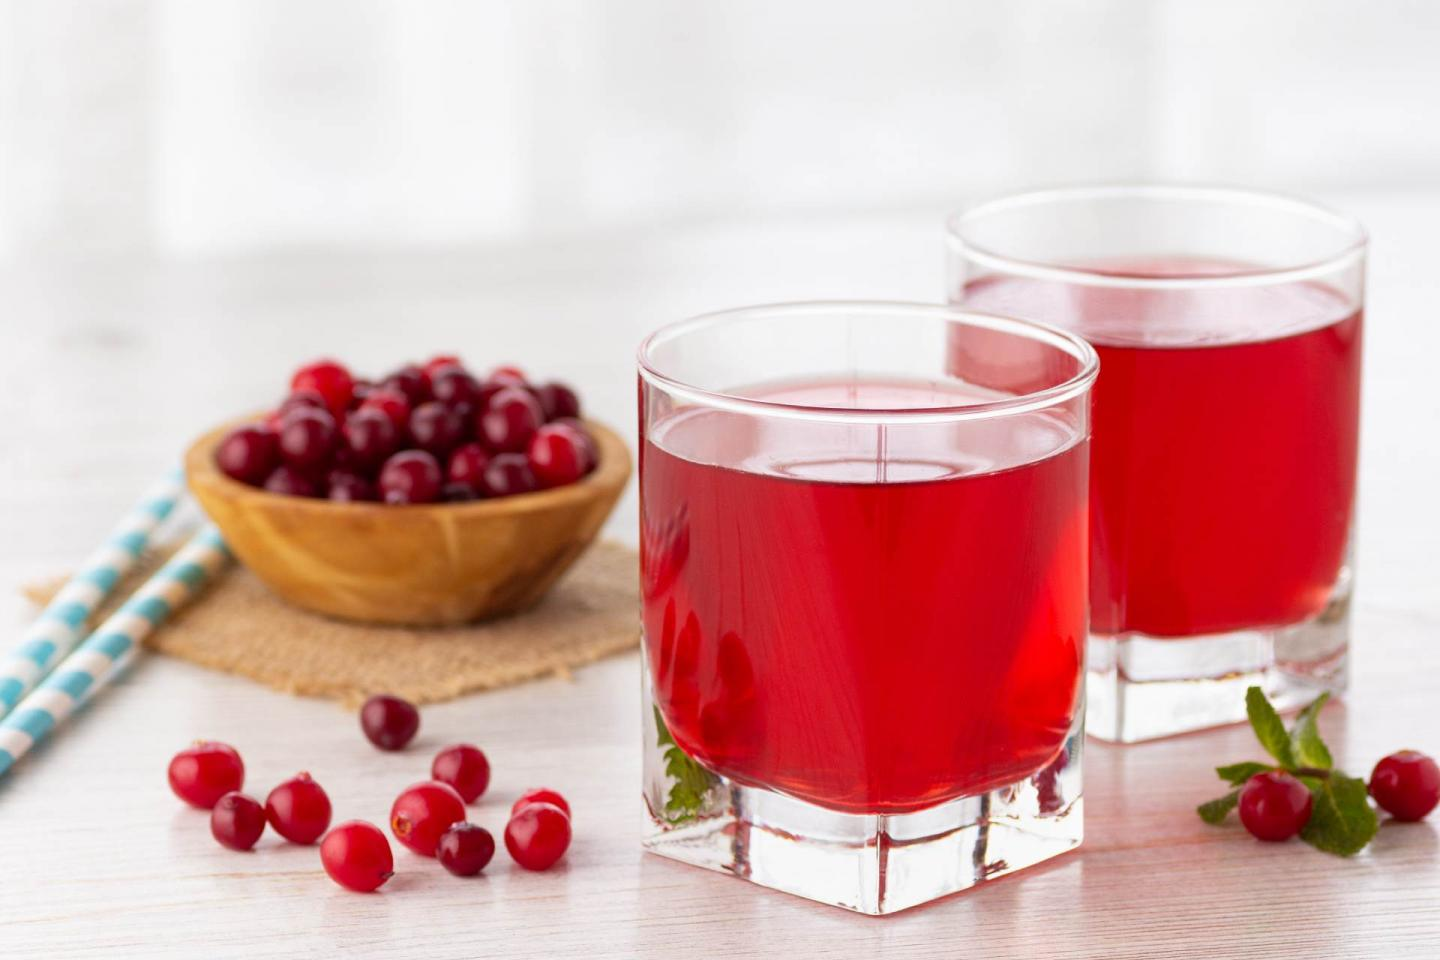 home remedies for utis cranberry juice